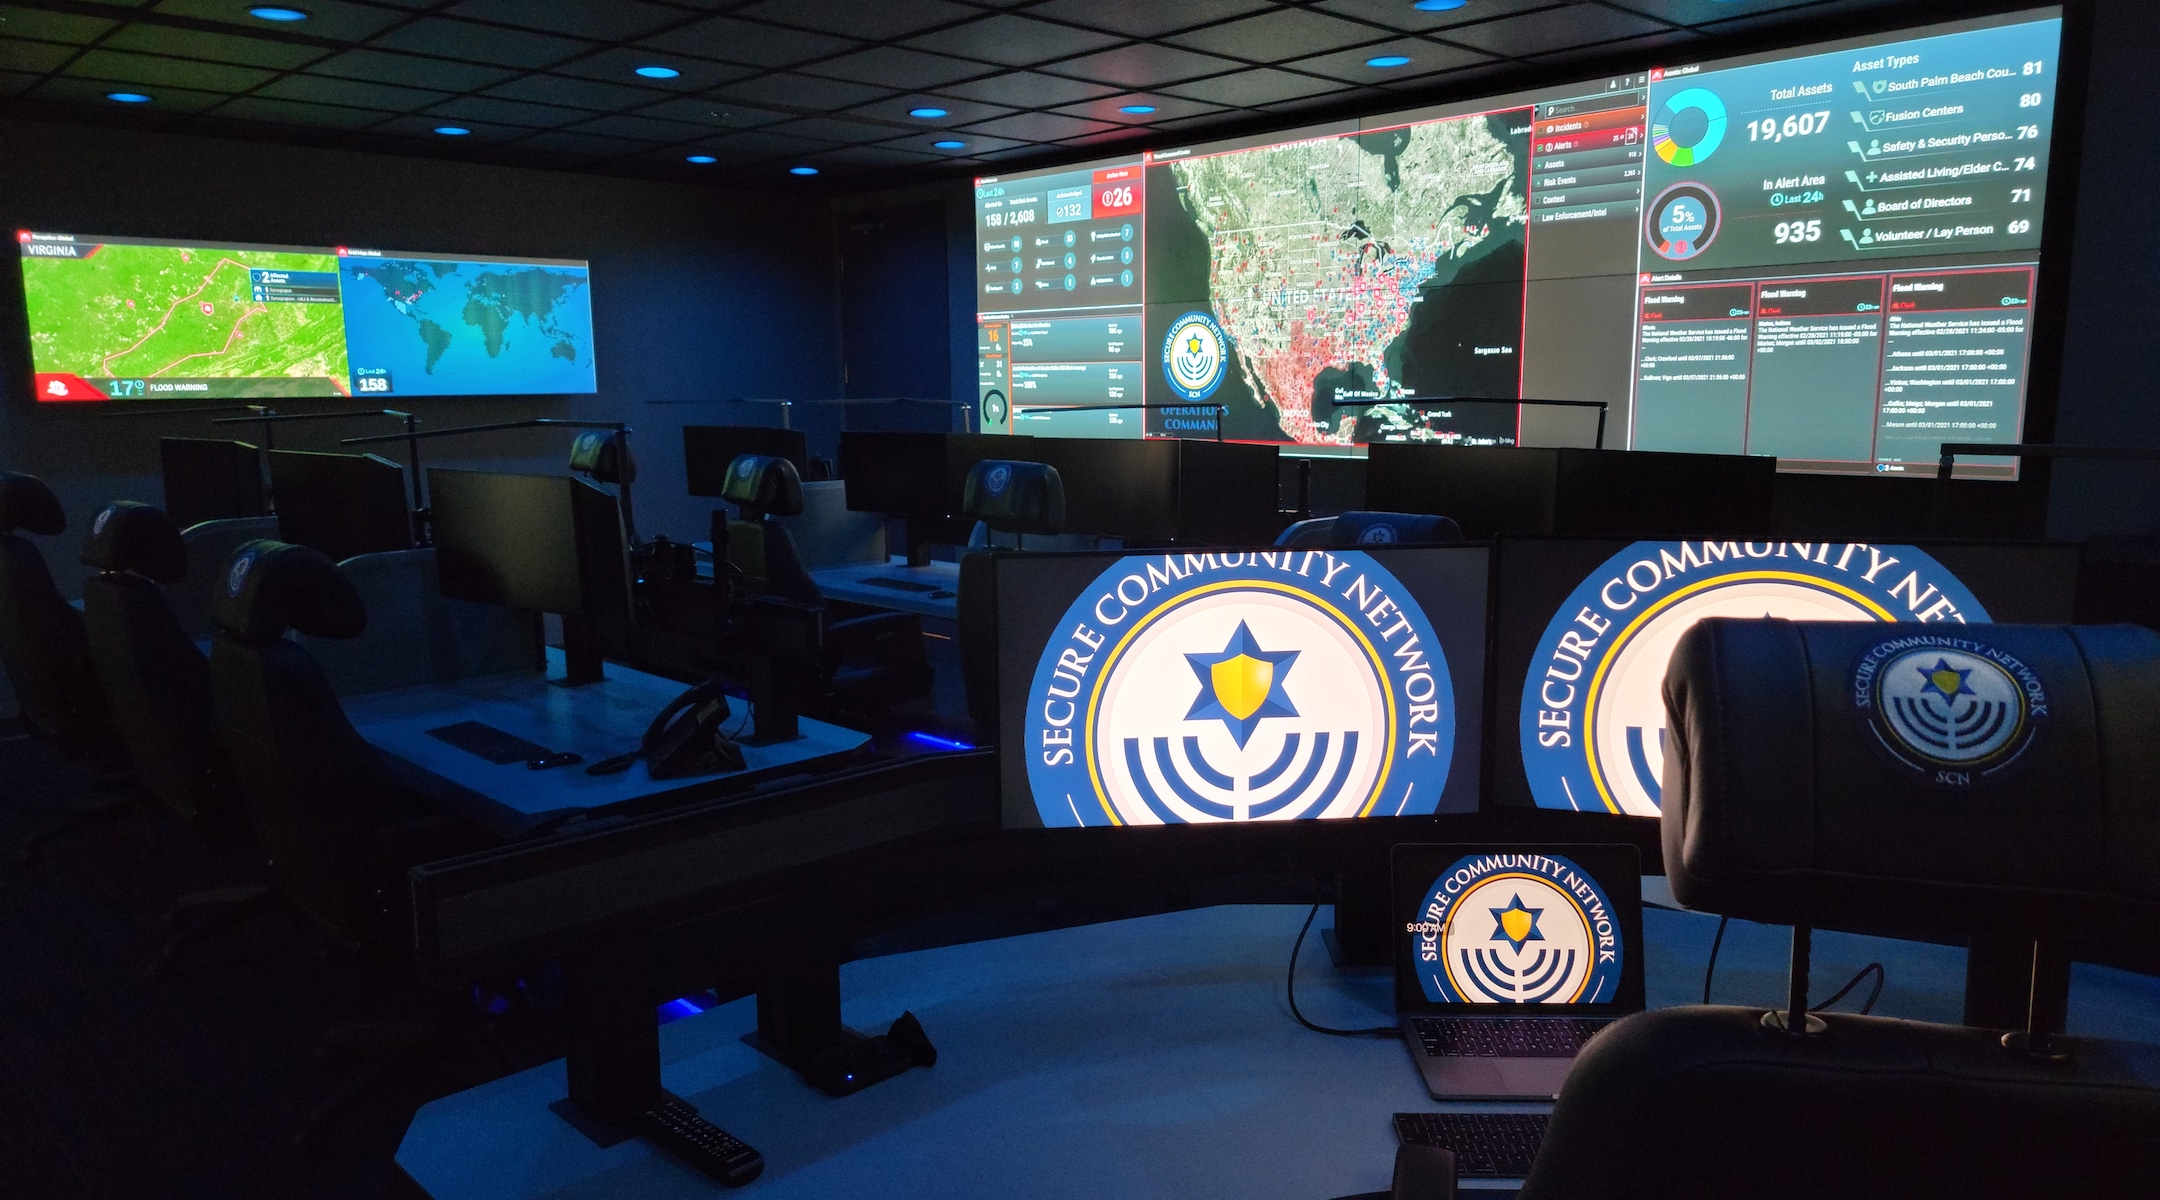 Jewish security organization opens national command center in Chicago